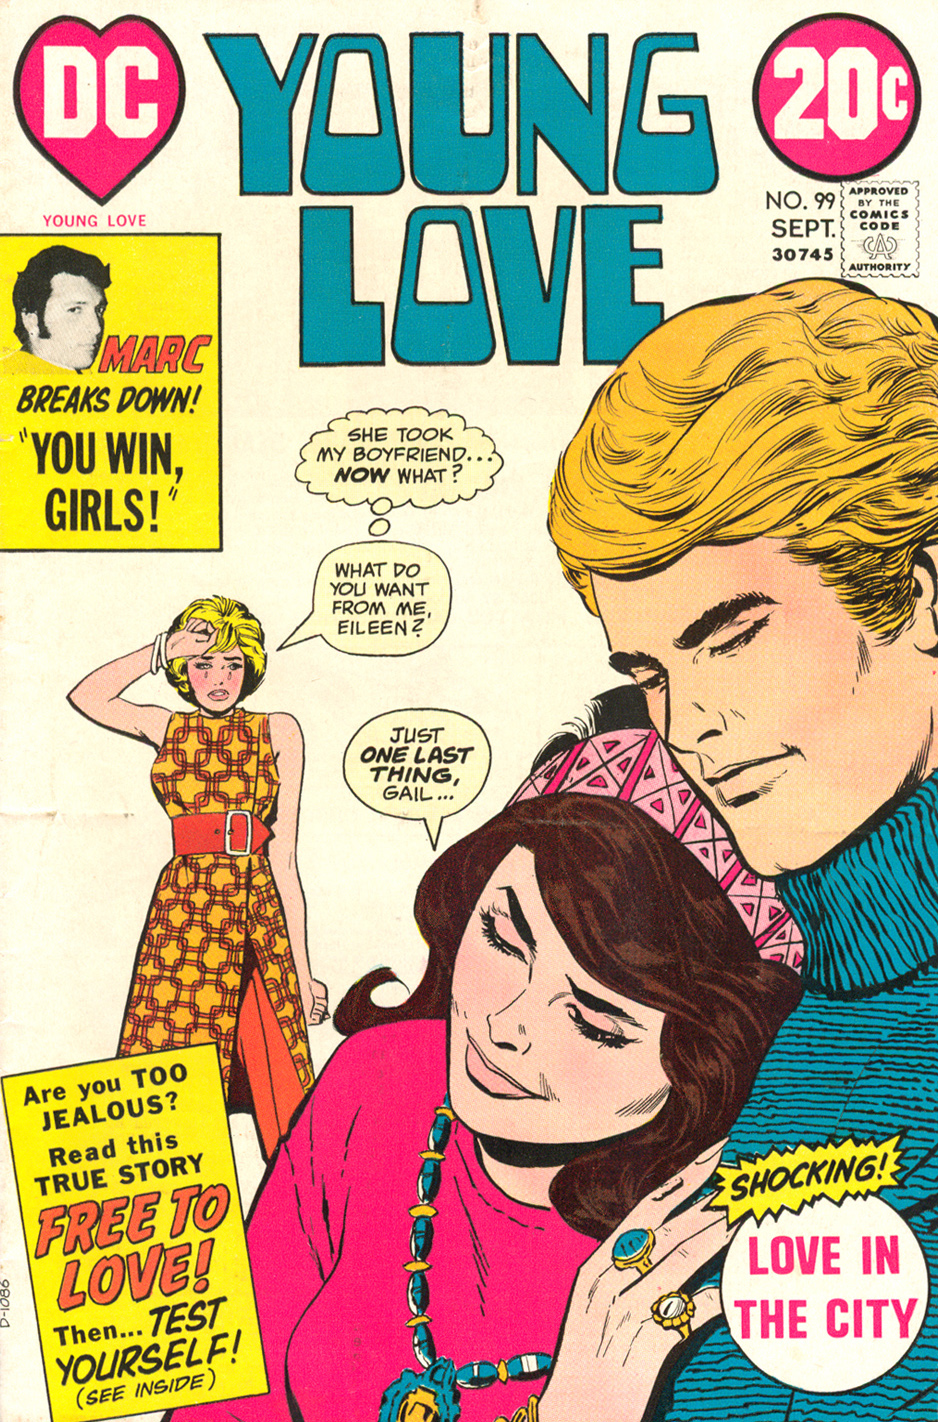 Young Love  #99 (September 1972)